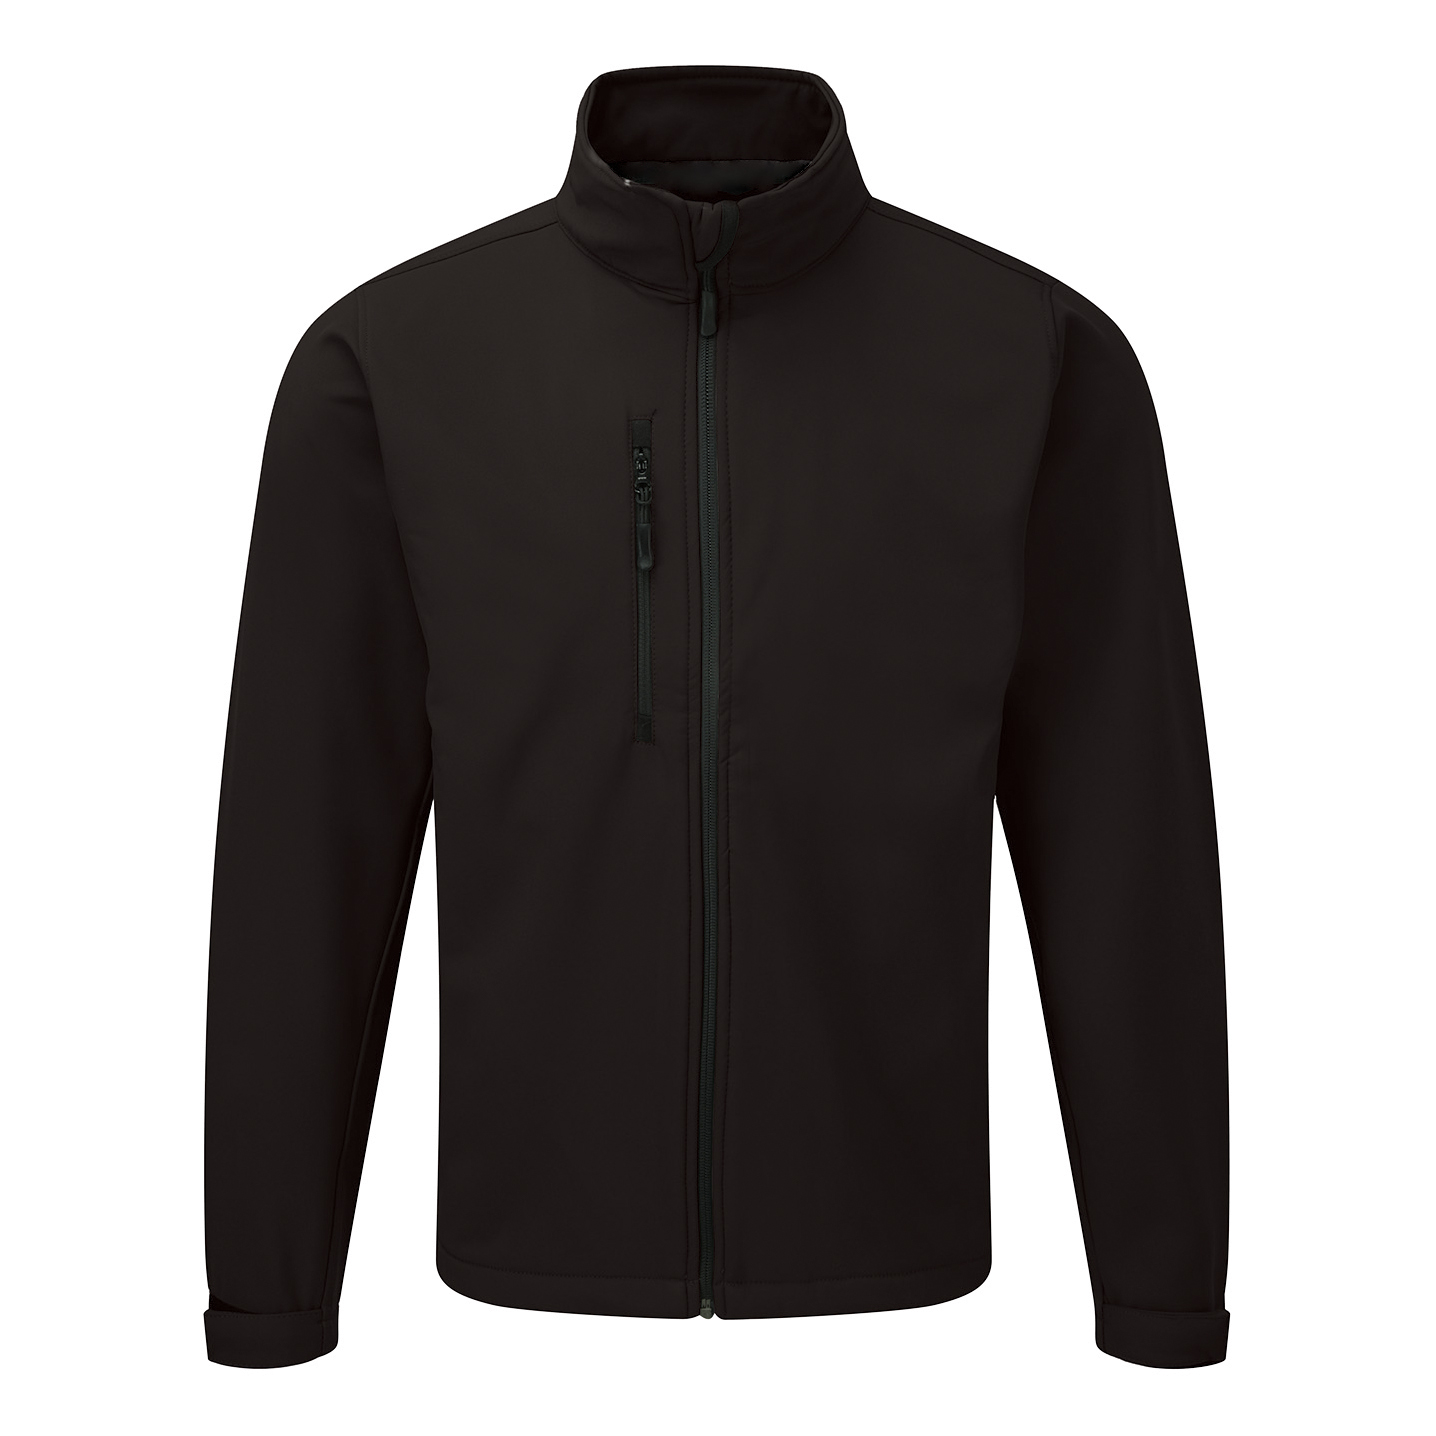 Business Soft Shell Water Resistant Breathable Jacket 320gsm Size 2XL Black